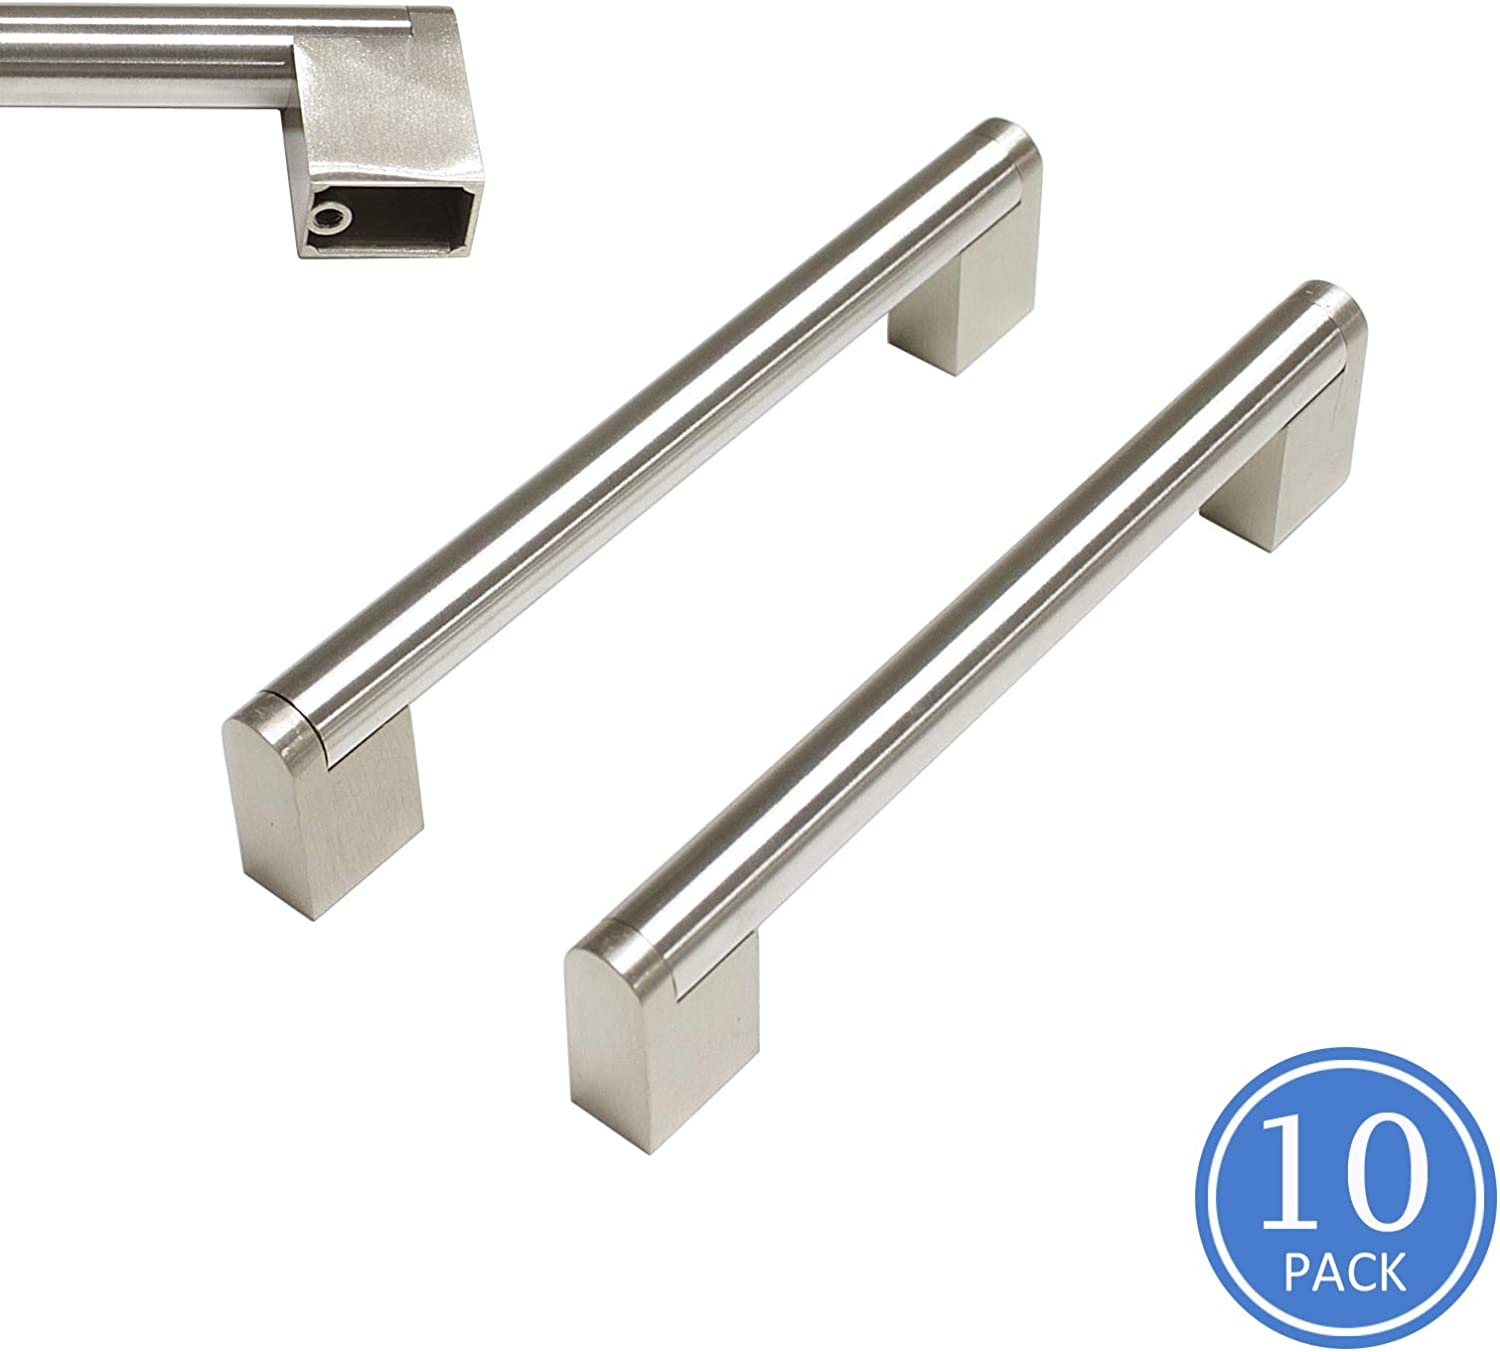 Knobonly 5 inch Hole Spacing Boss Bar Brushed Nickel Finish Kithchen Cupboard Handles Cabinet Pulls Door Handles-10 Pack